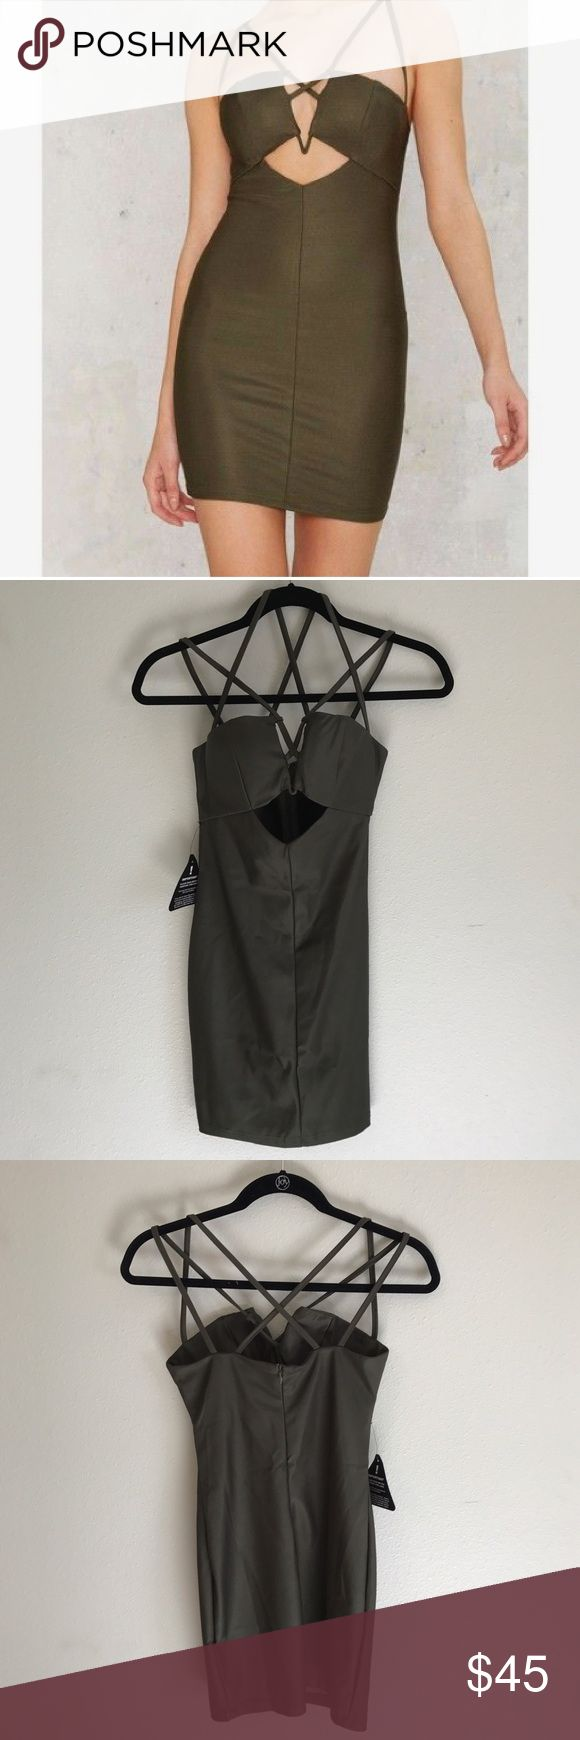 Rare London Olive Green Dress Rare London dress purchased from Nasty Gal. The first picture shows the color it is in person. The dress is gorgeous and fits like a glove but unfortunately I don't have anywhere to wear it to. Nasty Gal Dresses